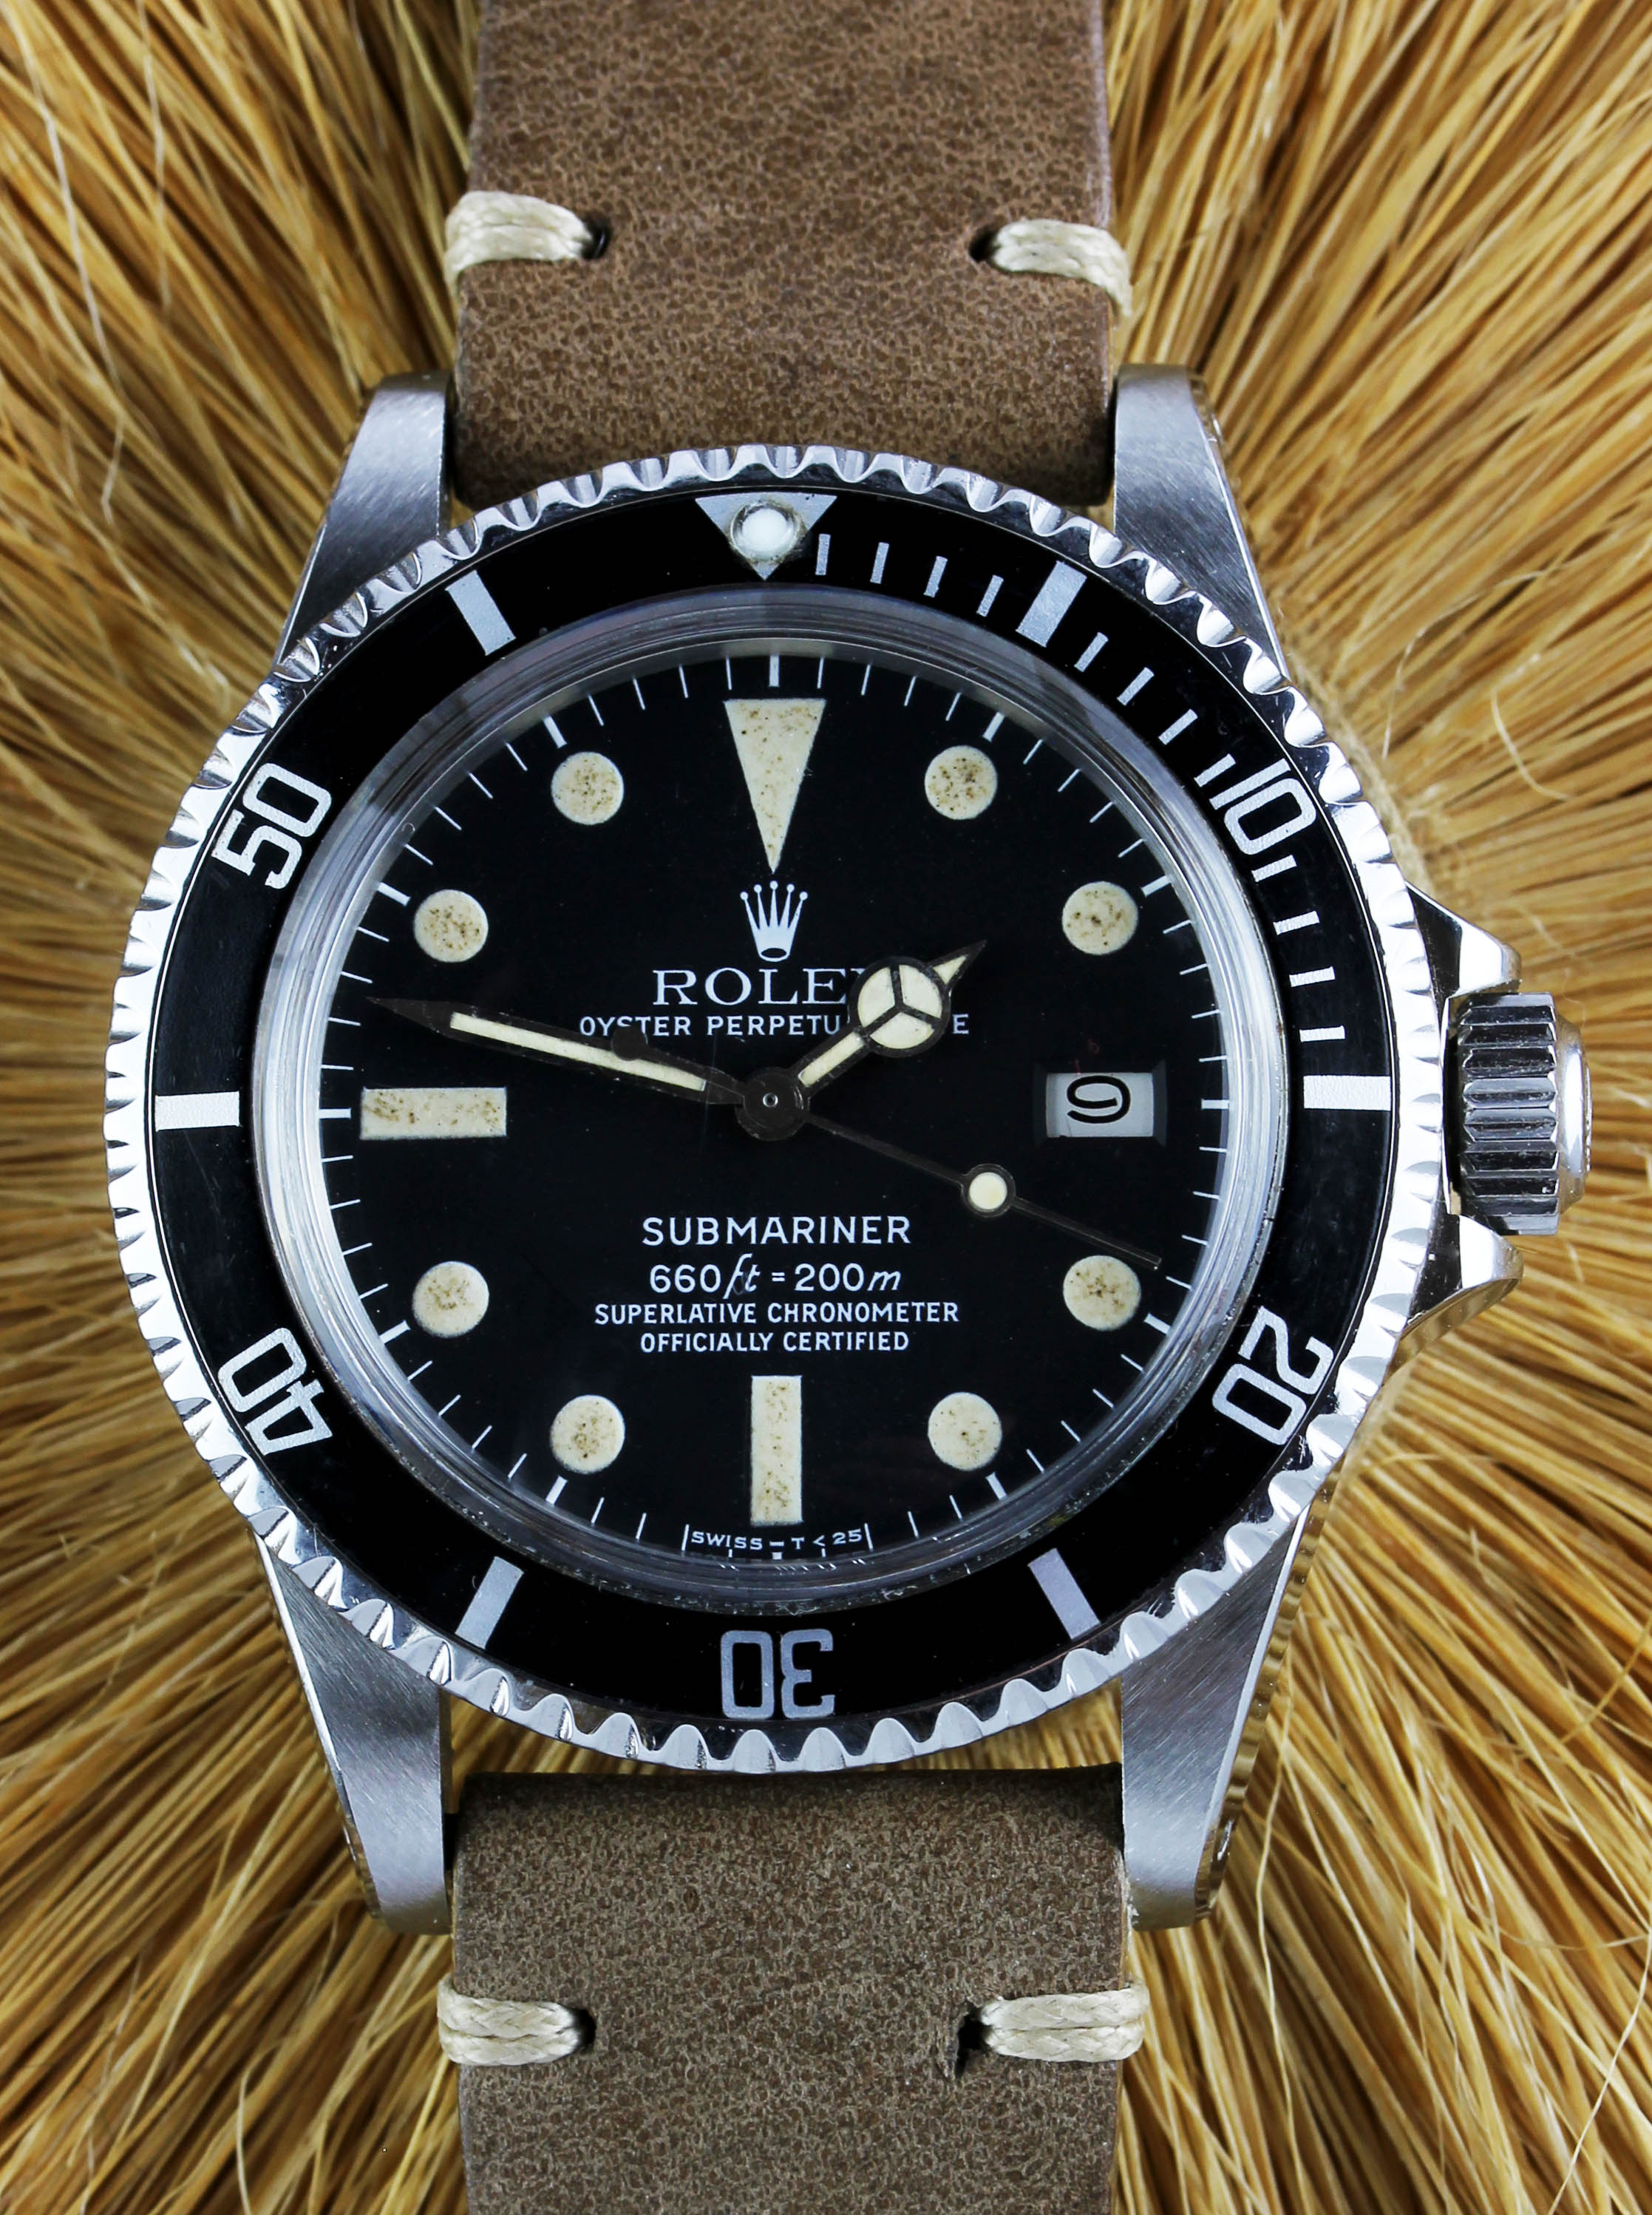 Vintage ROLEX-Submariner ref. 1680 from 1979